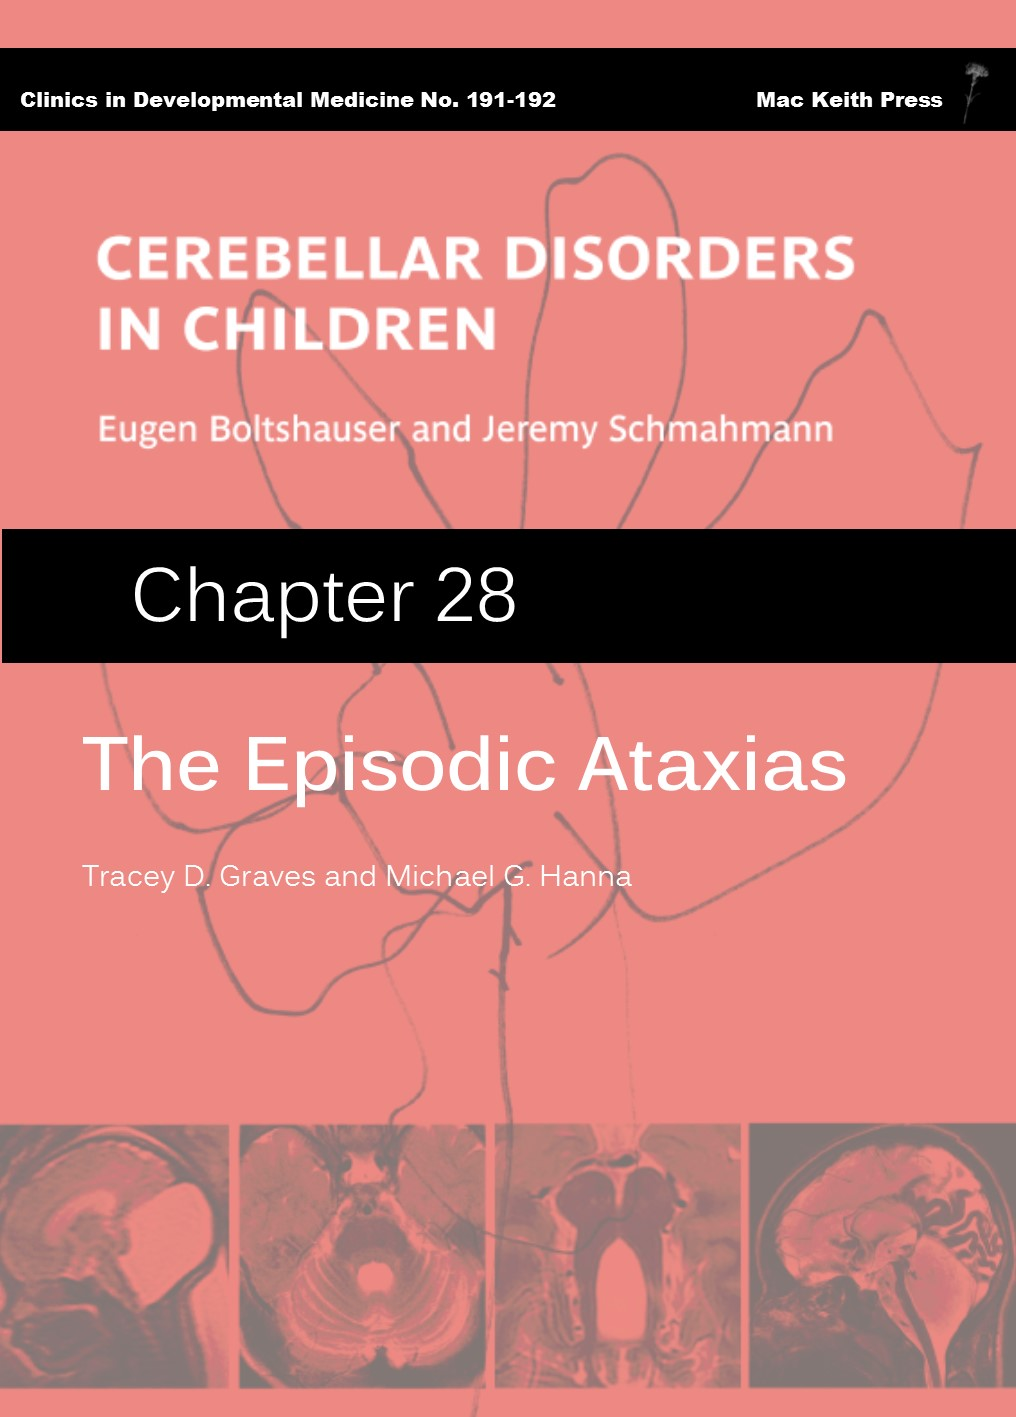 The Episodic Ataxias - Cerebellar Disorders in Children (Chapter 28) COVER